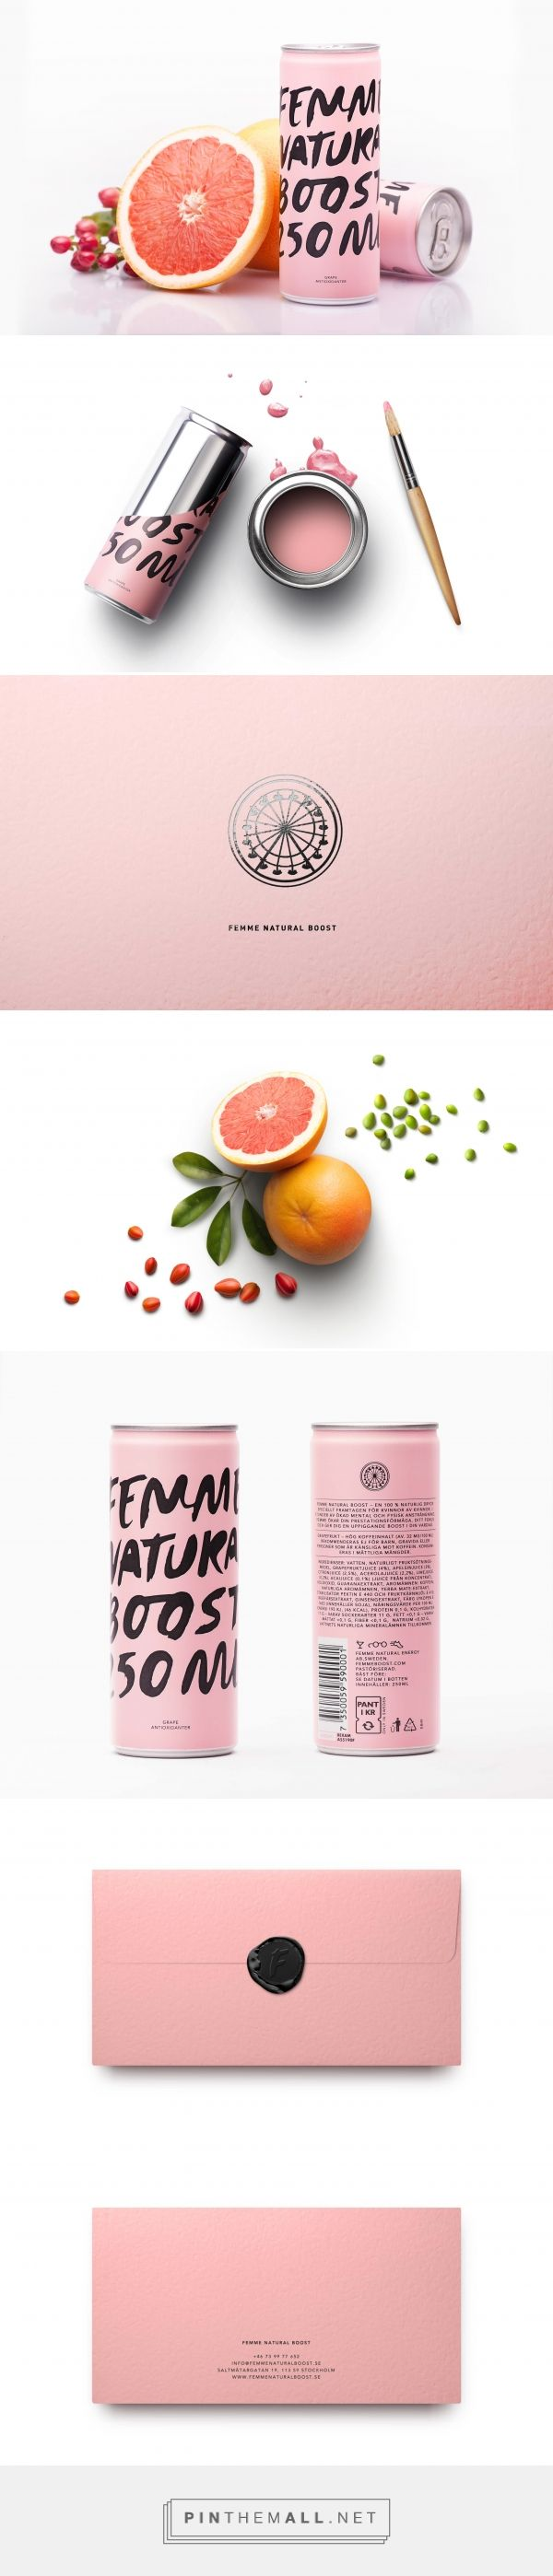 Femme Natural Boost Energy Drink Branding and Packaging by E & W | Fivestar Branding Agency – Design and Branding Agency & Curated Inspiration Gallery